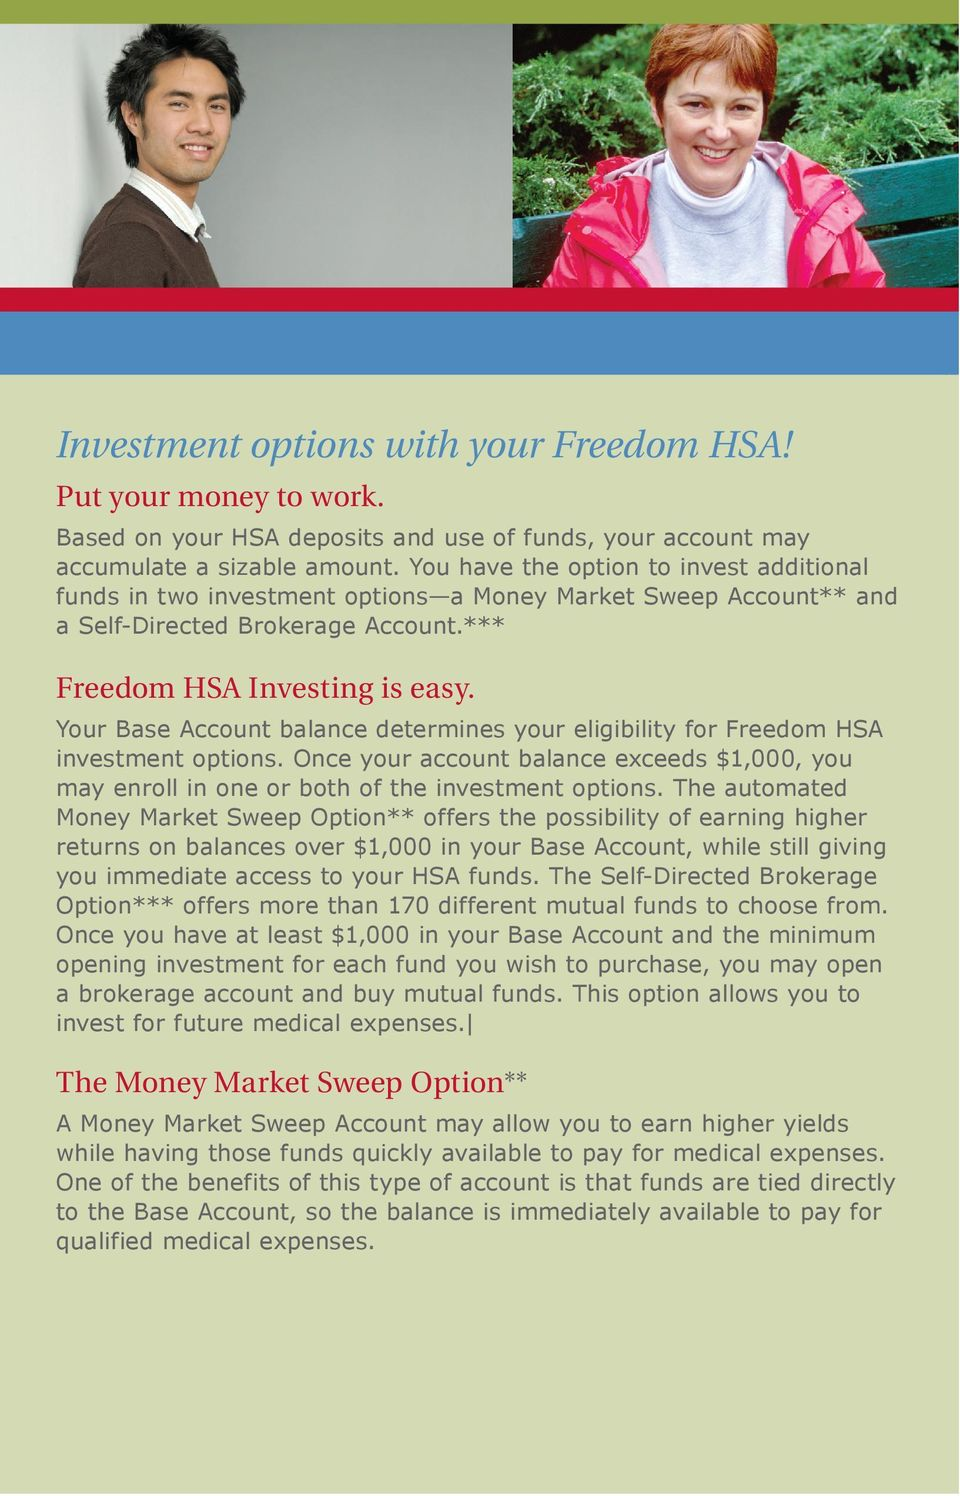 Your Base Account balance determines your eligibility for Freedom HSA investment options. Once your account balance exceeds $1,000, you may enroll in one or both of the investment options.